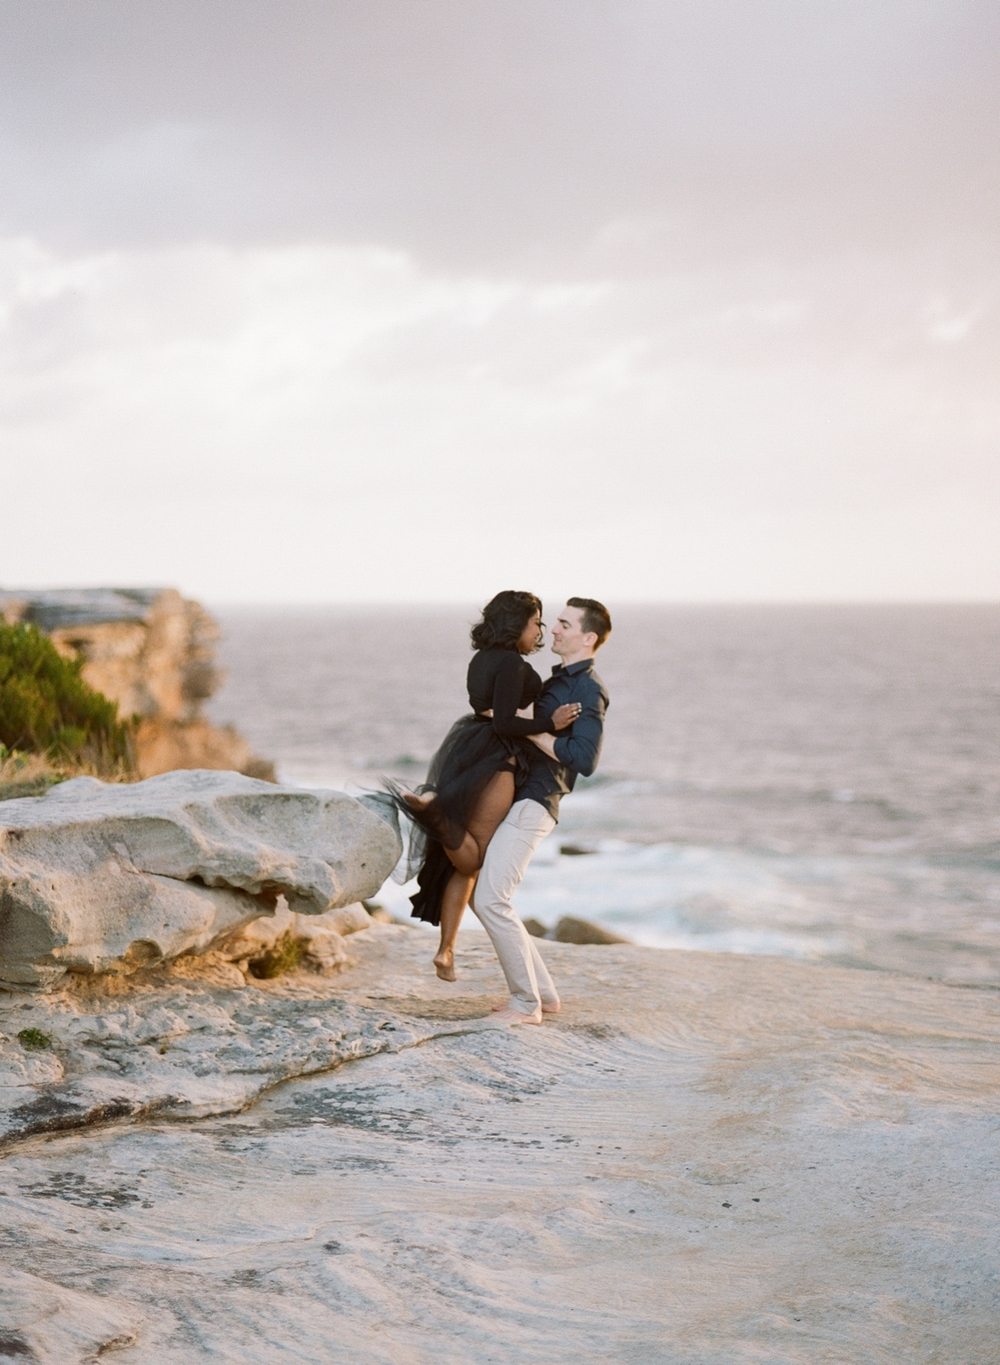 Coastal Sydney couples session by Mr Edwards Photography_0737_1137.jpg